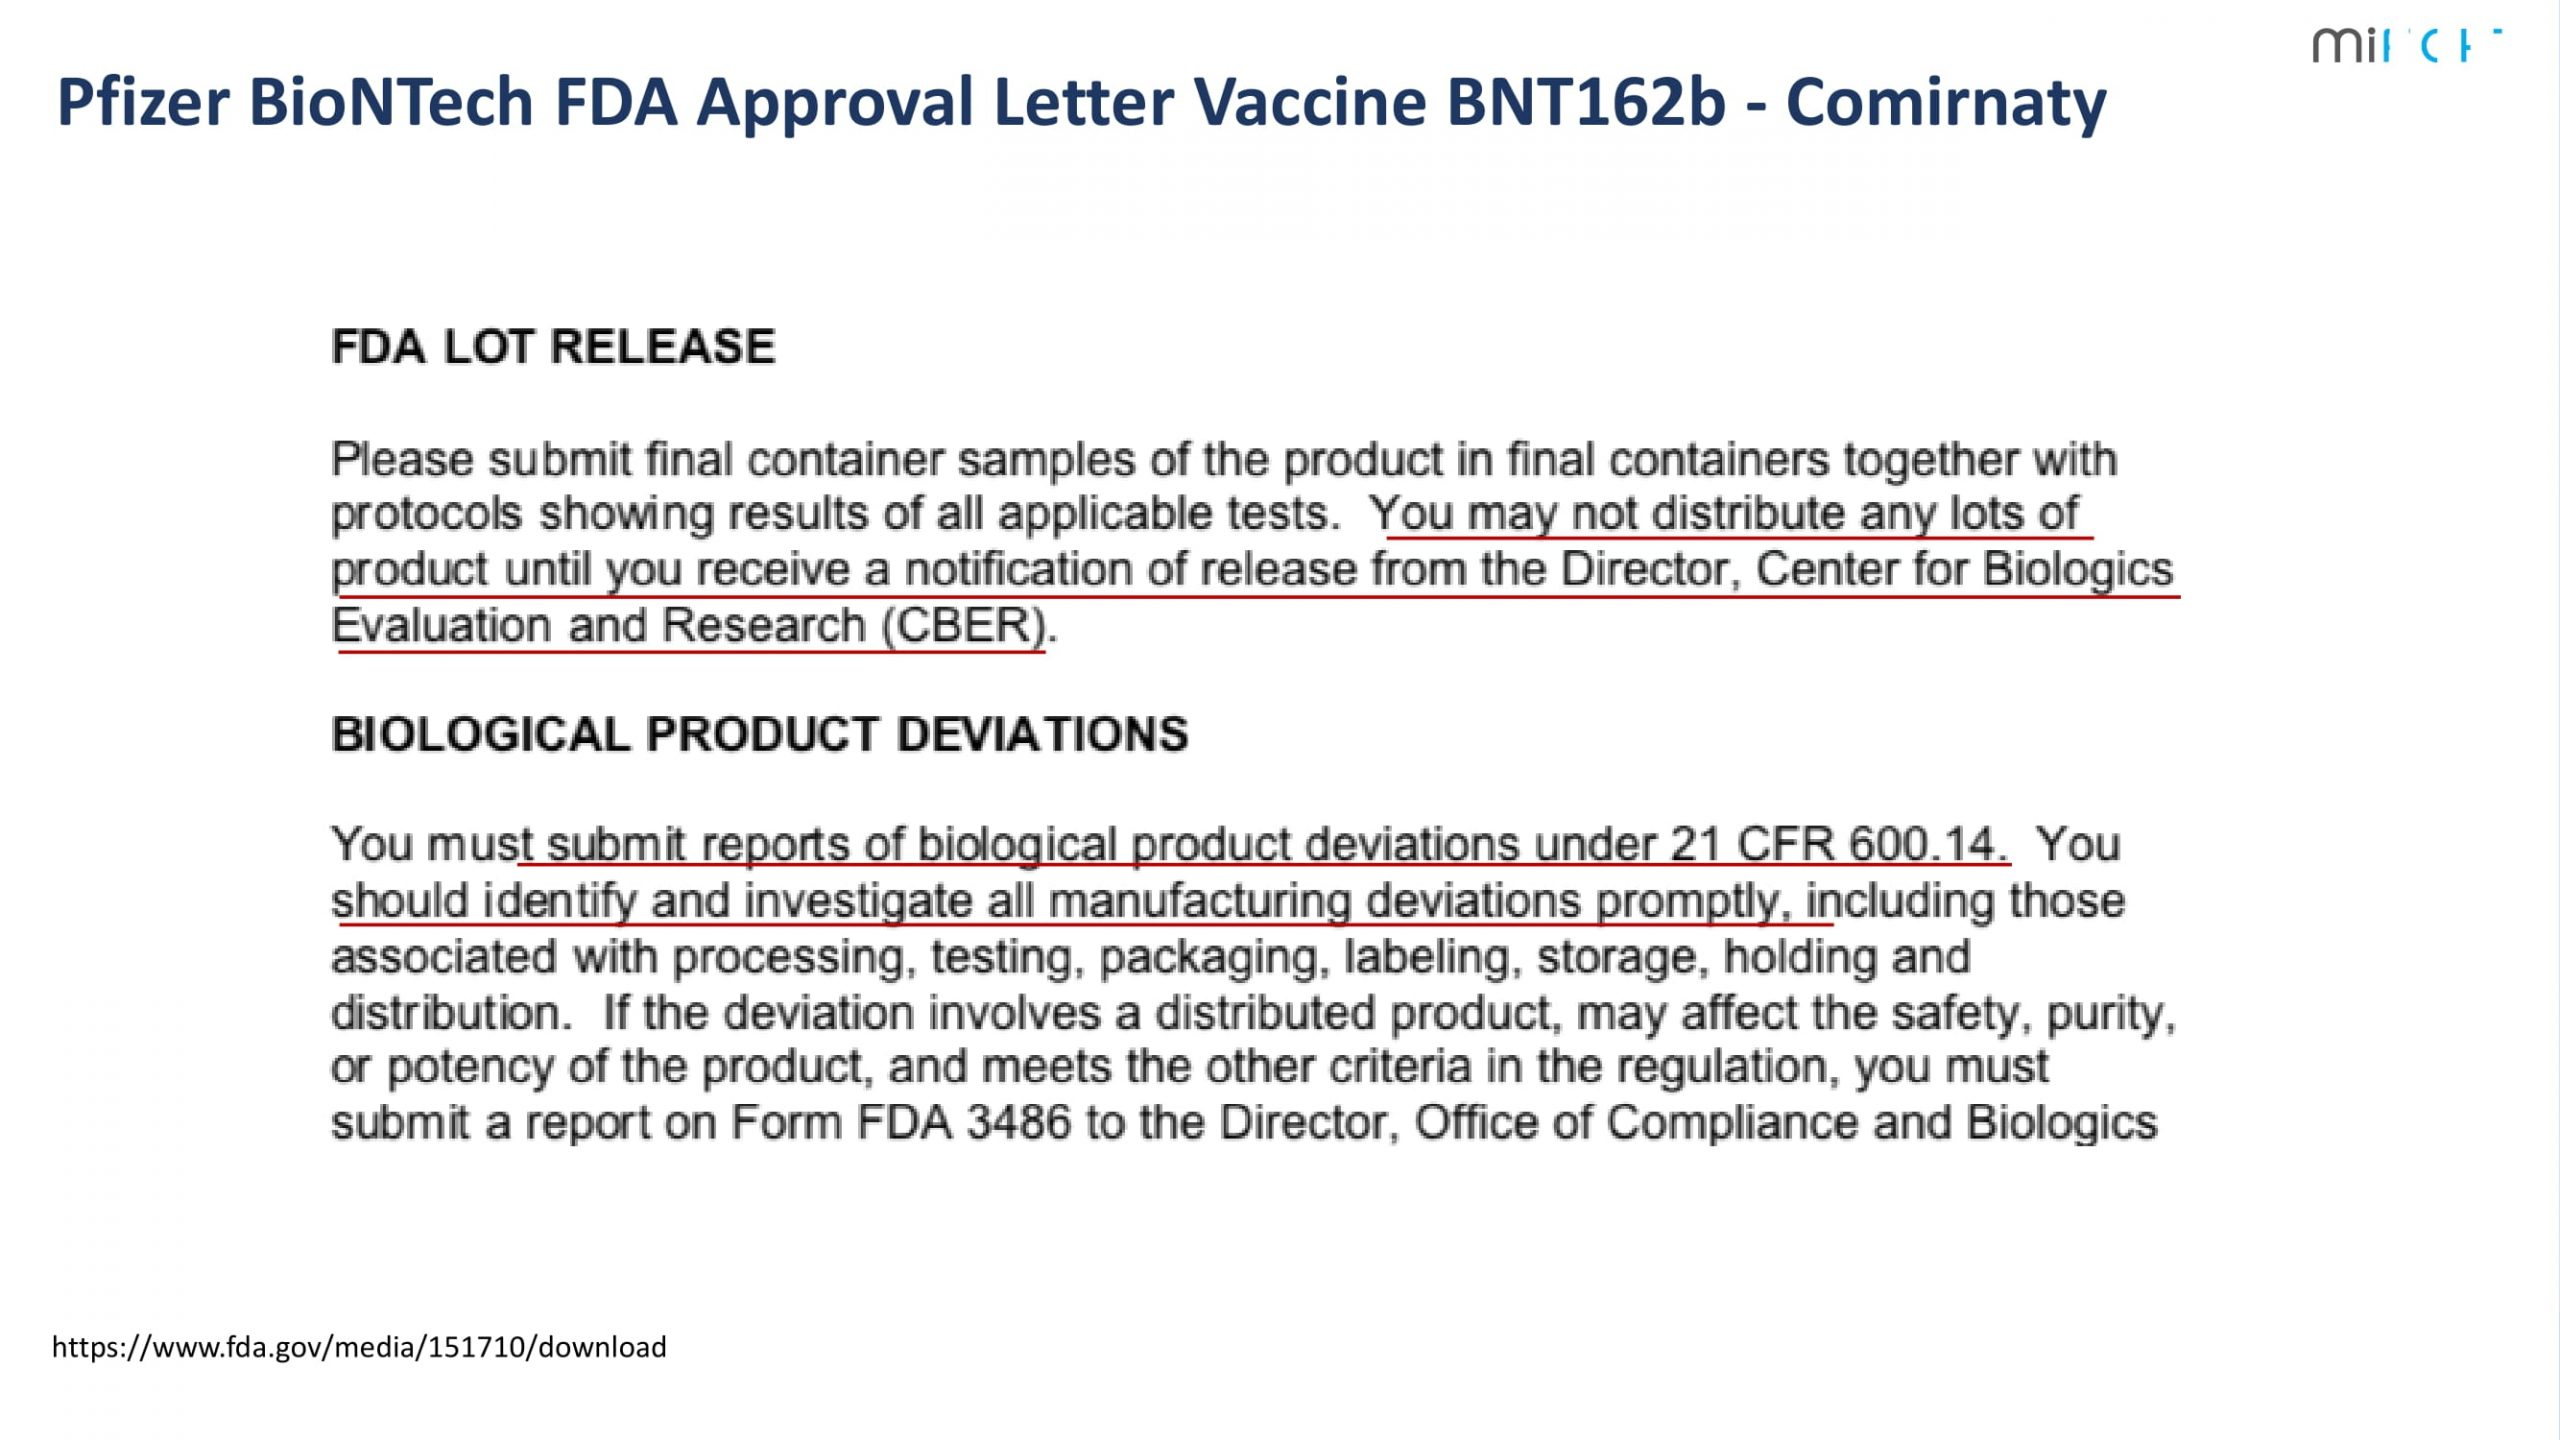 DB_9_14_21_FDA_Letter-converted-03